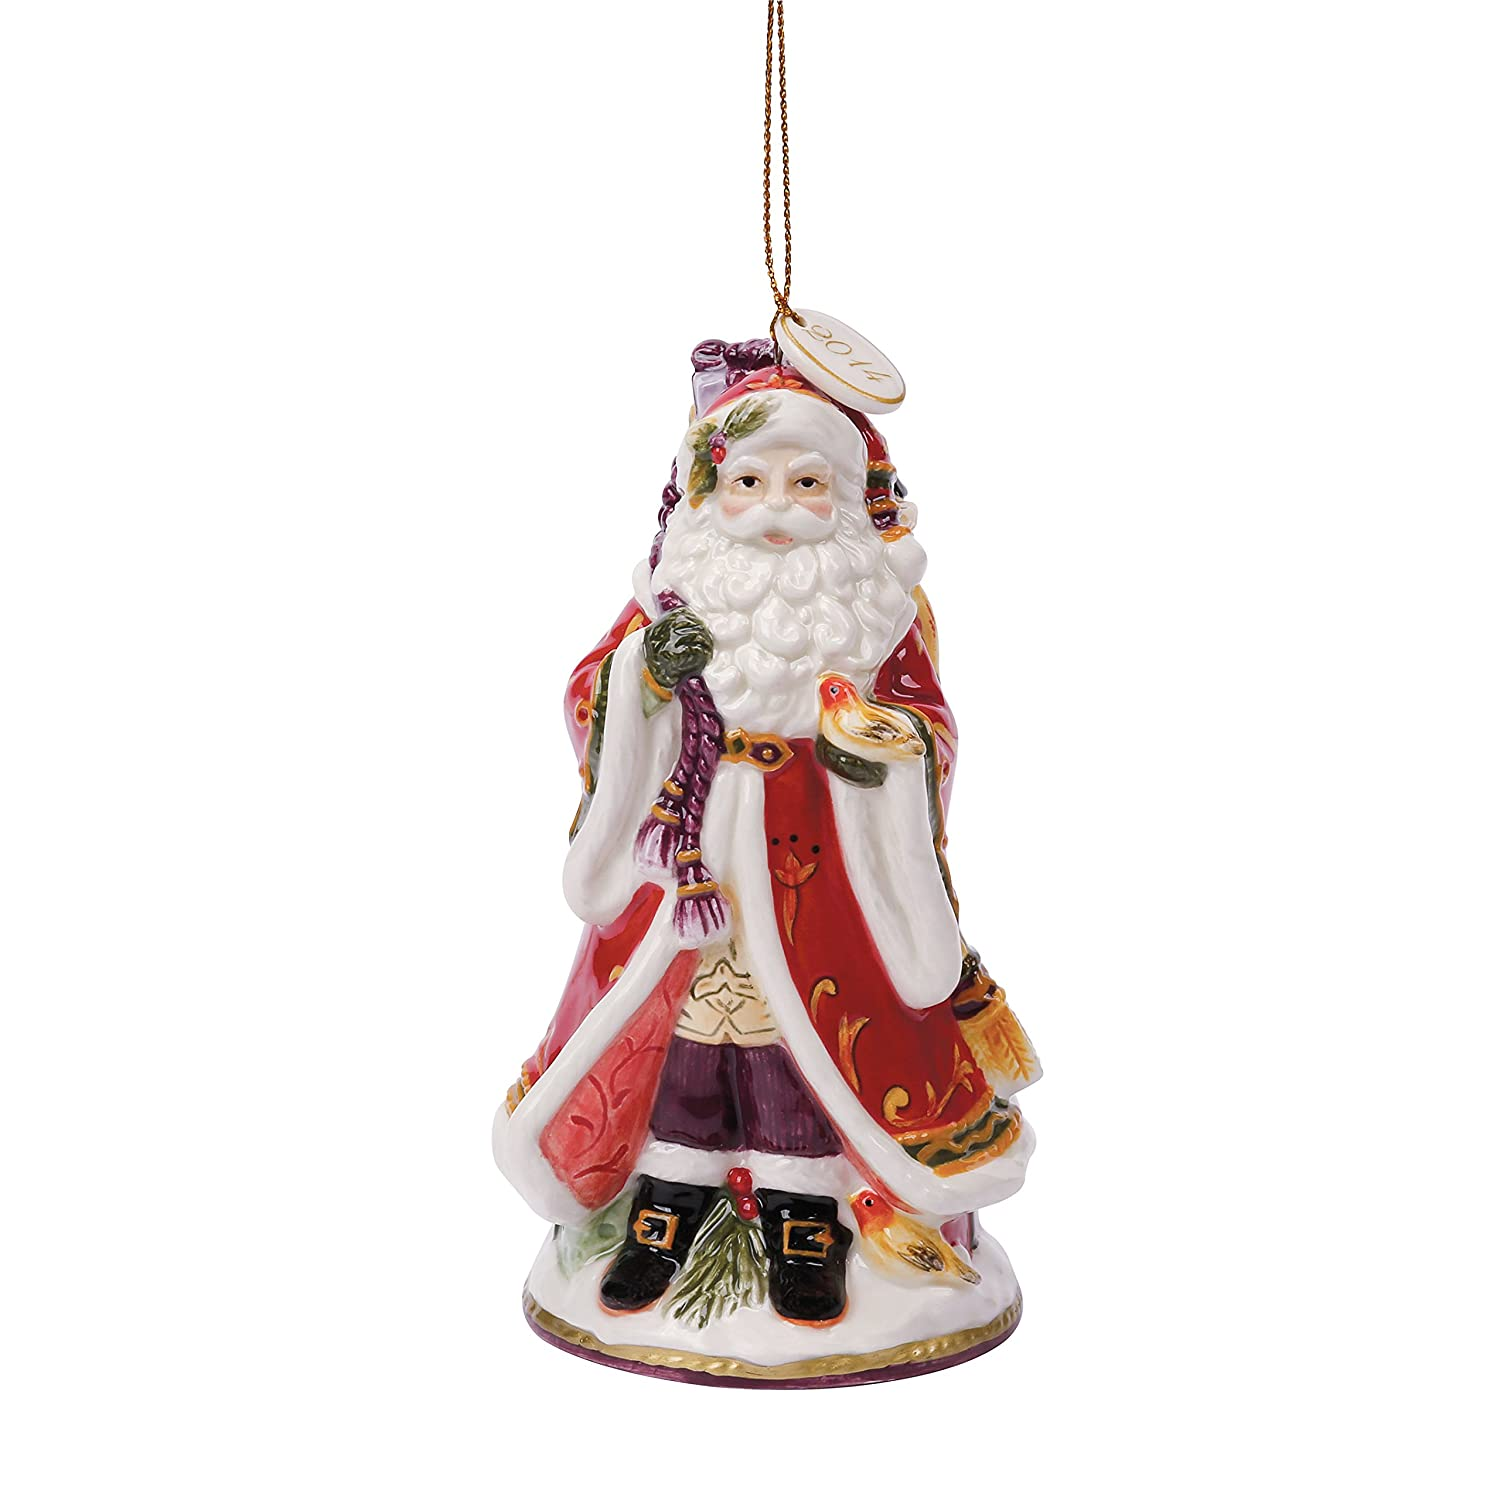 Amazoncom Regal Holiday Collection, Dated Bell Santa Figurine Home &